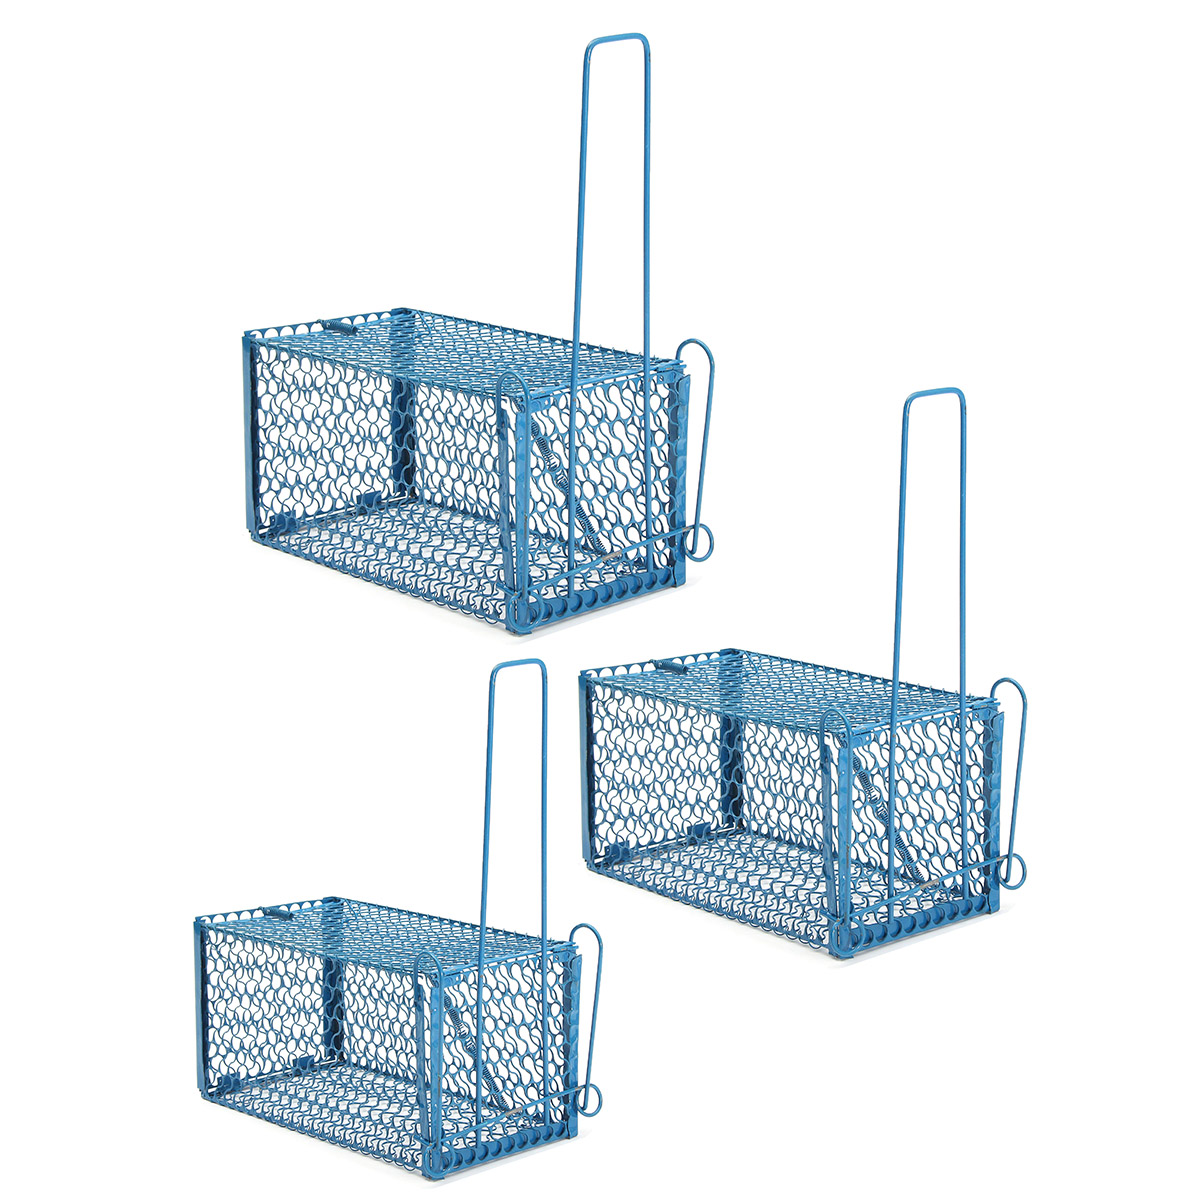 Mouse Cage Trap Rodent Animal Hamster Bottle Live Mice Rat Control Catch Bait Live Home Rat Killer Indoor Or Outdoor